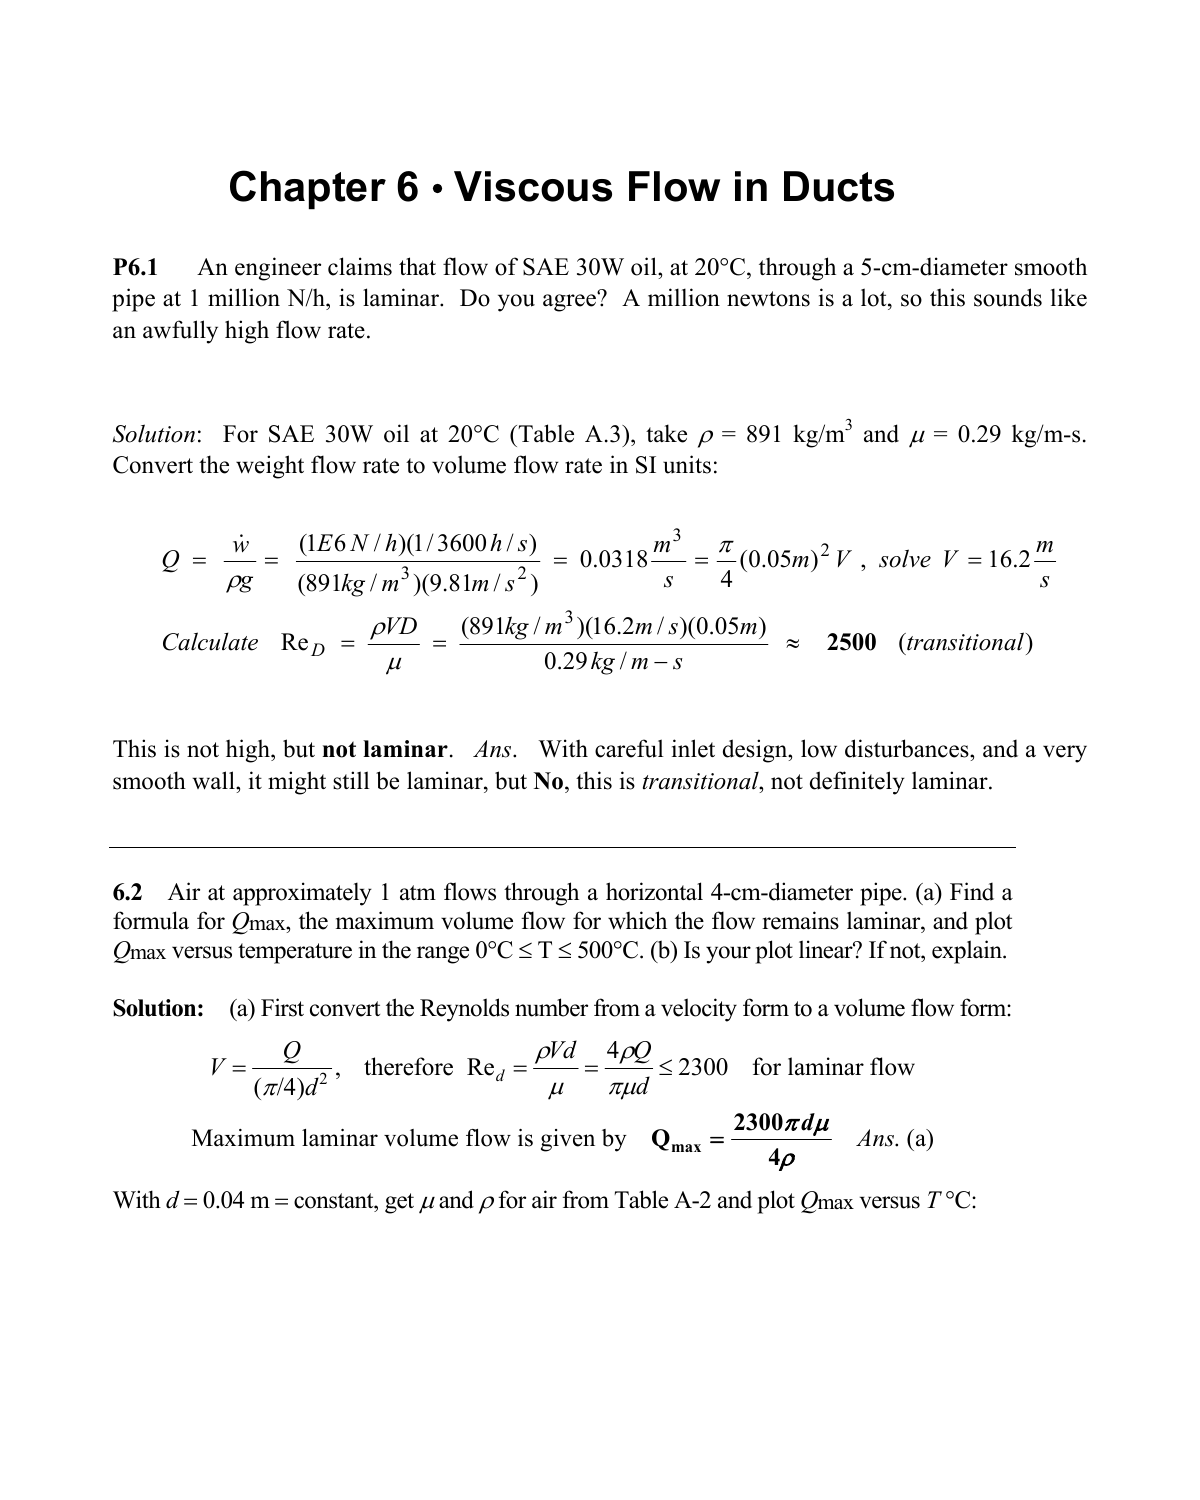 Chapter 6 • Viscous Flow in Ducts